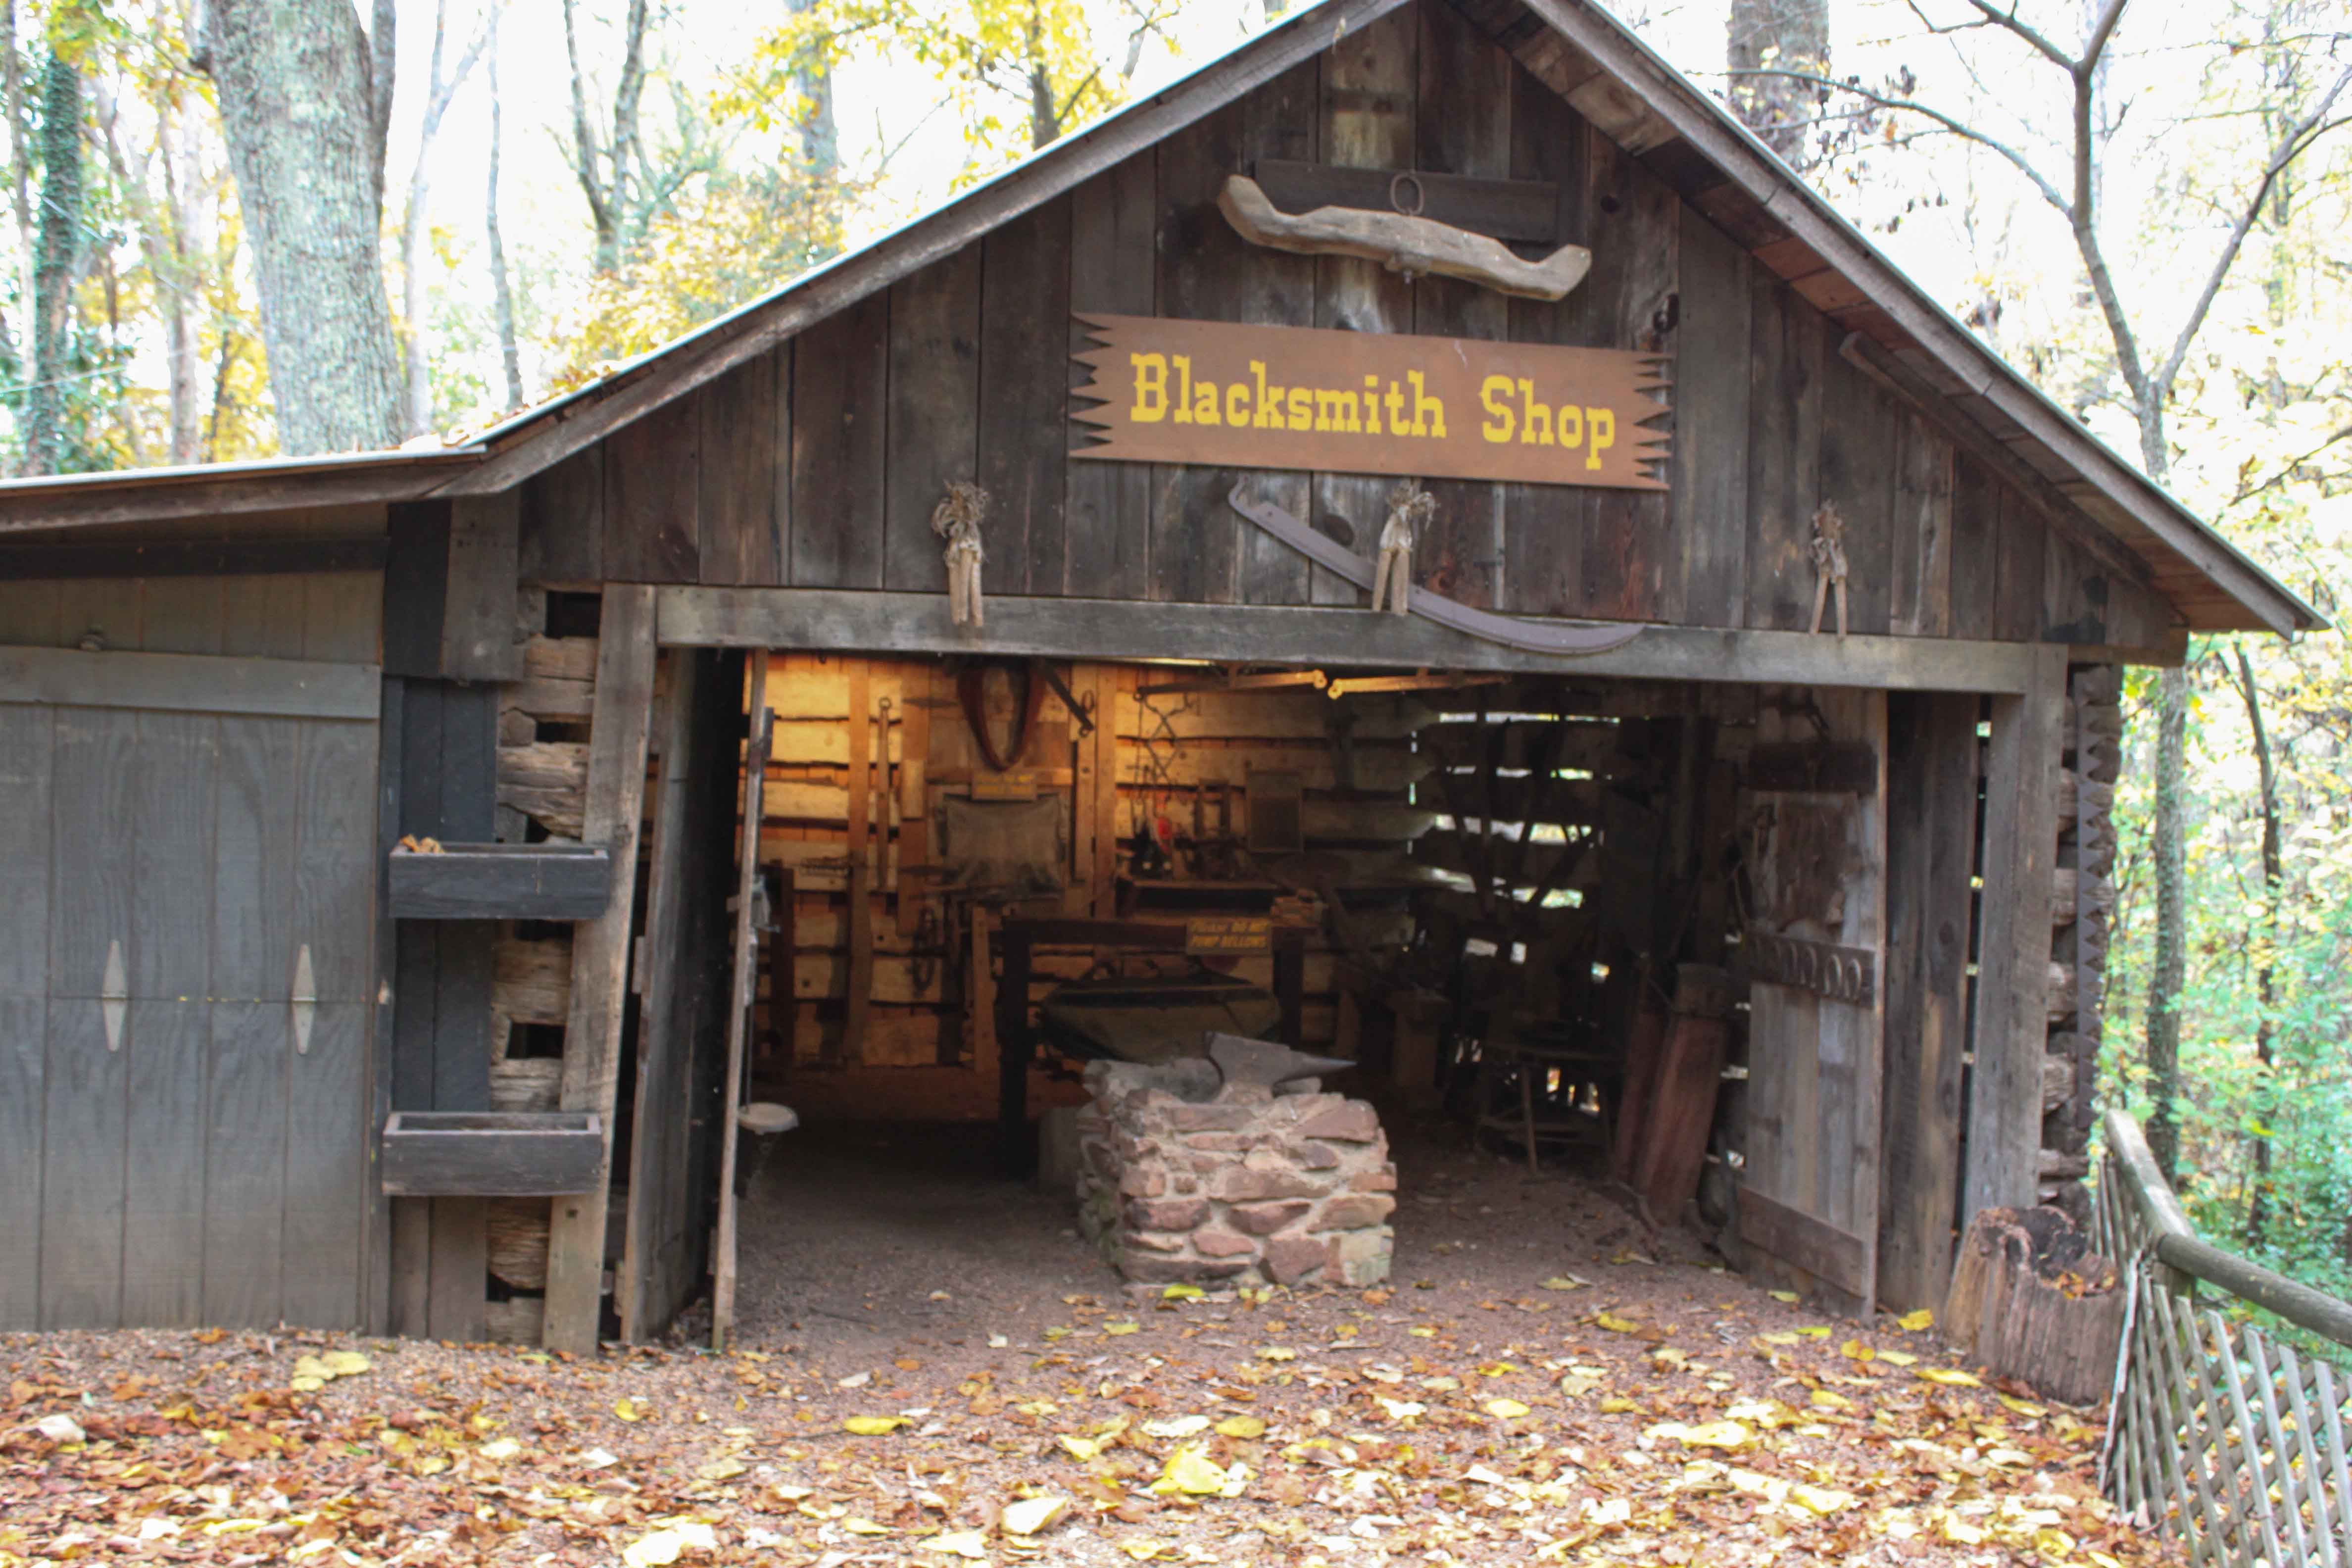 Old Man S Cave General Store Hours : The lost sea adventure not as it looks